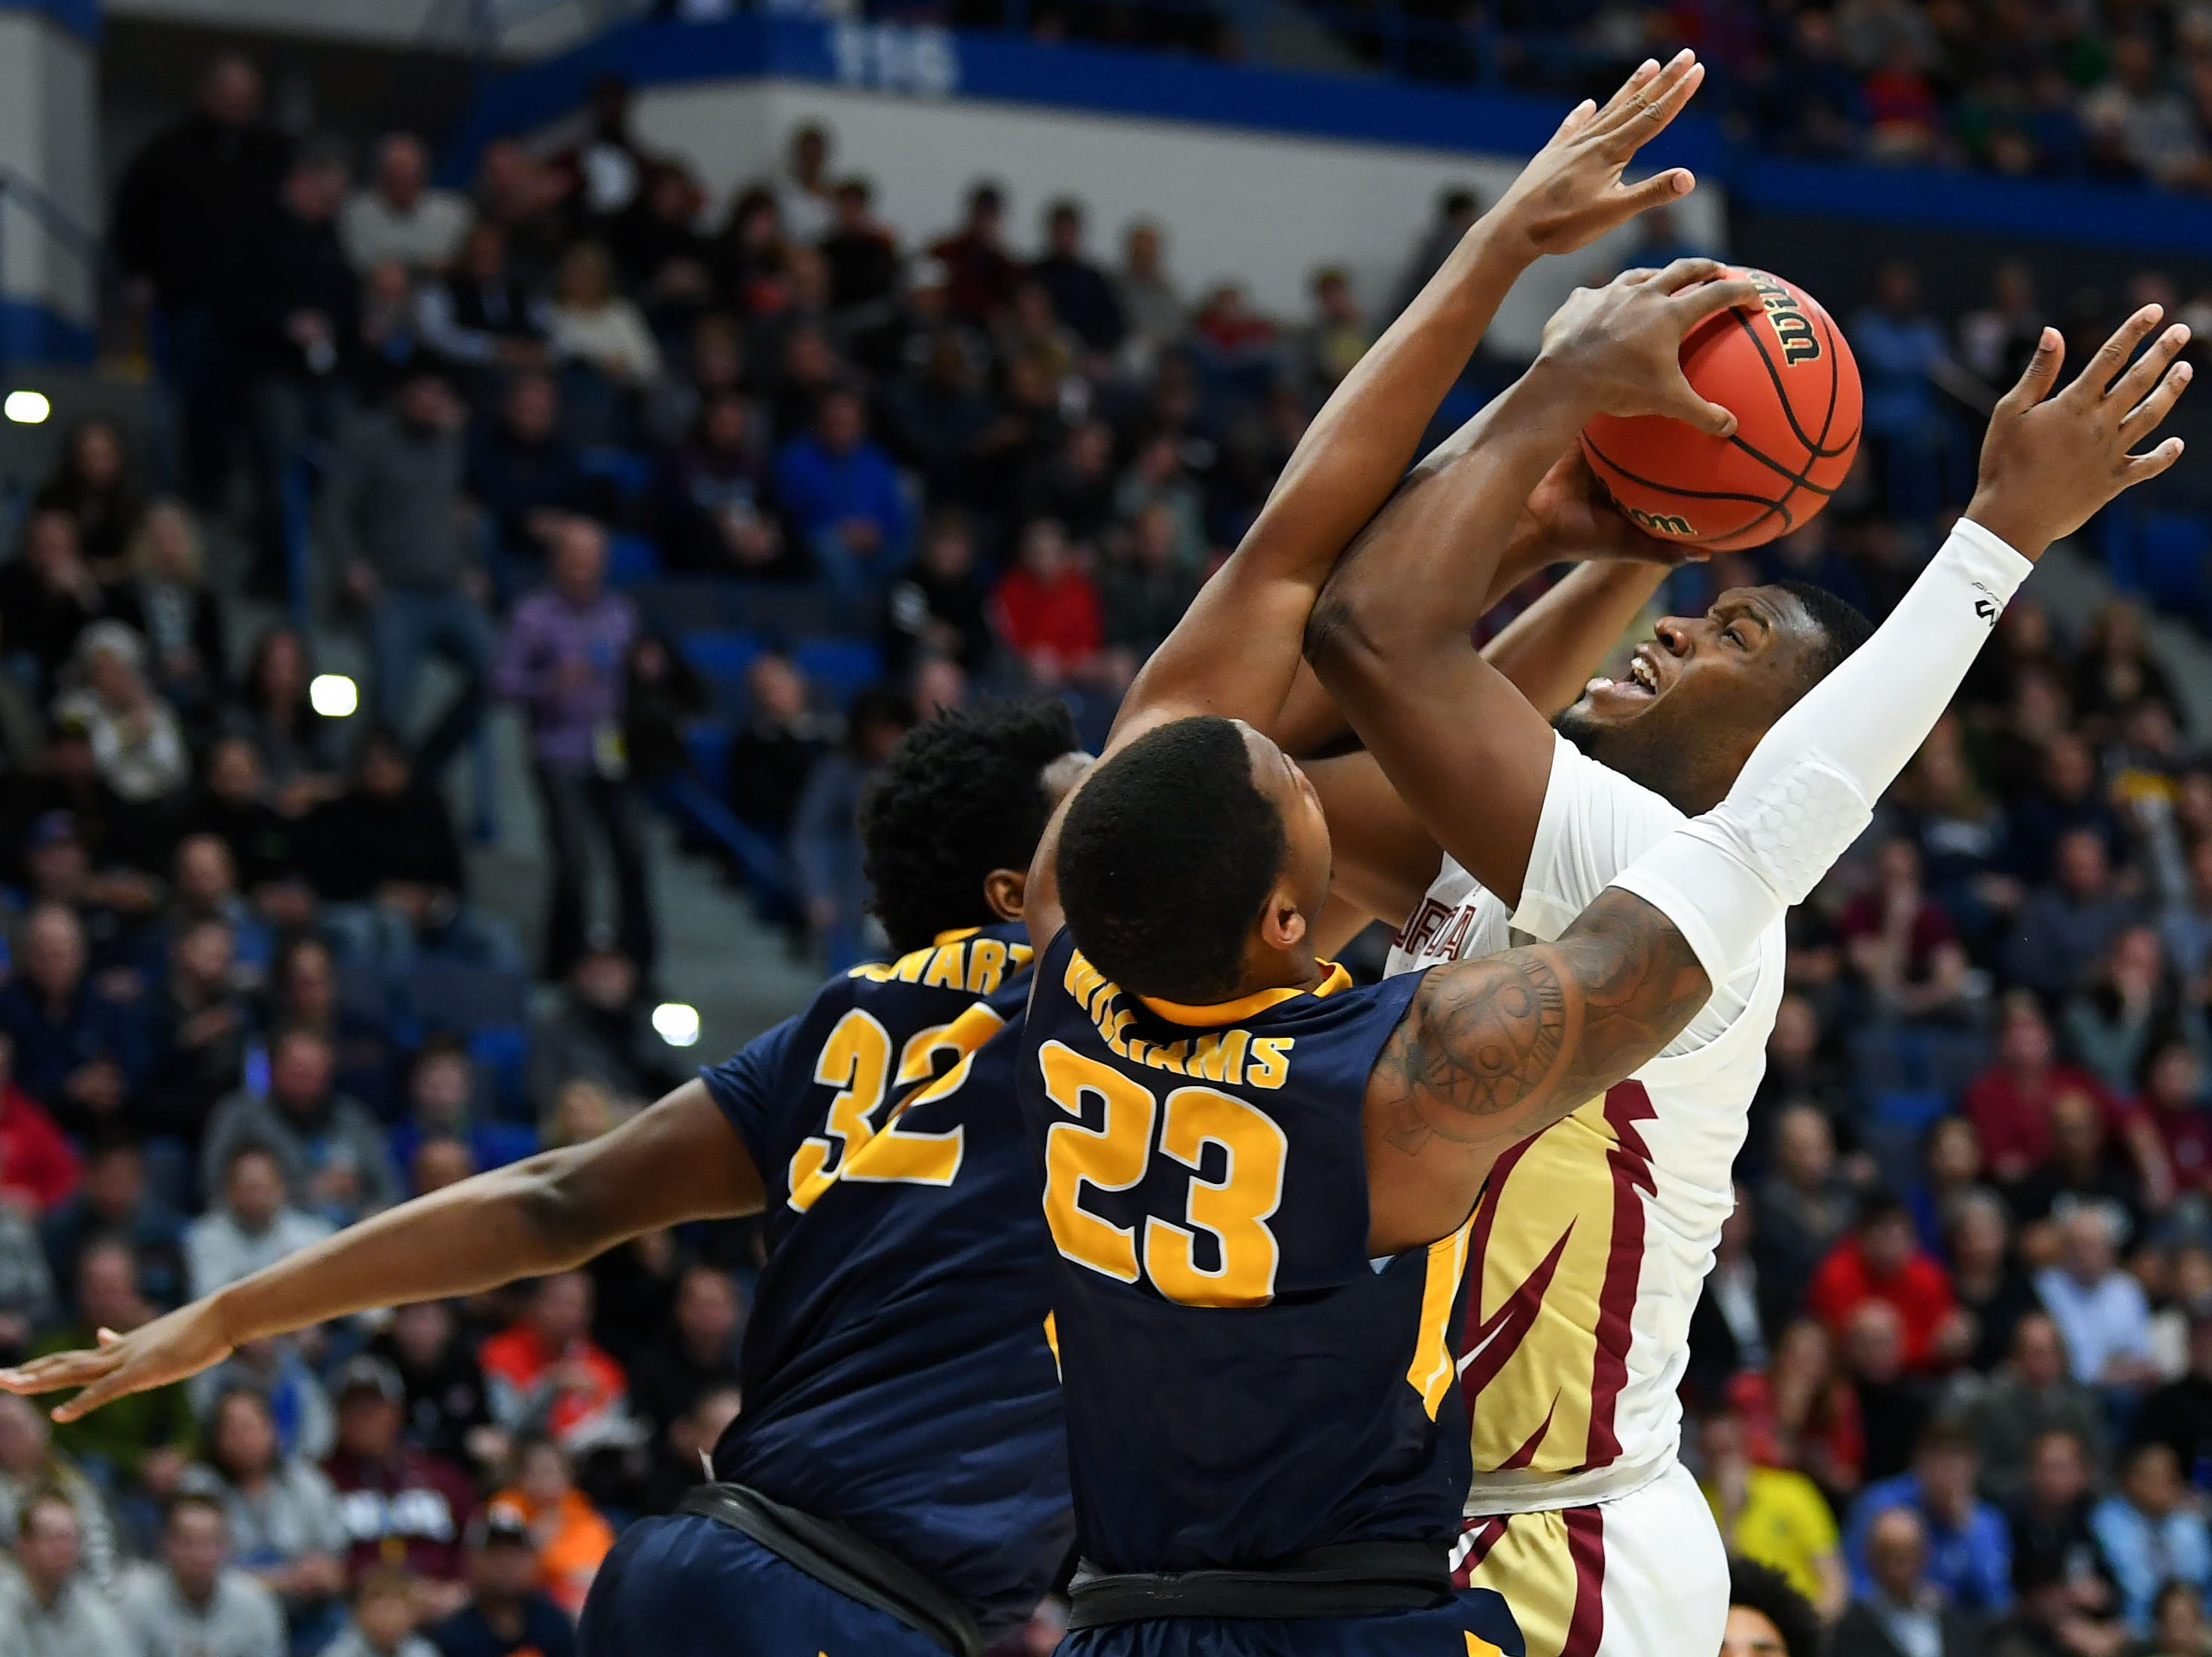 Mar 23, 2019; Hartford, CT, USA; Murray State Racers forward Darnell Cowart (32) and forward KJ Williams (23) defend Florida State Seminoles forward Raiquan Gray (1) during the first half of a game in the second round of the 2019 NCAA Tournament at XL Center. Mandatory Credit: Robert Deutsch-USA TODAY Sports